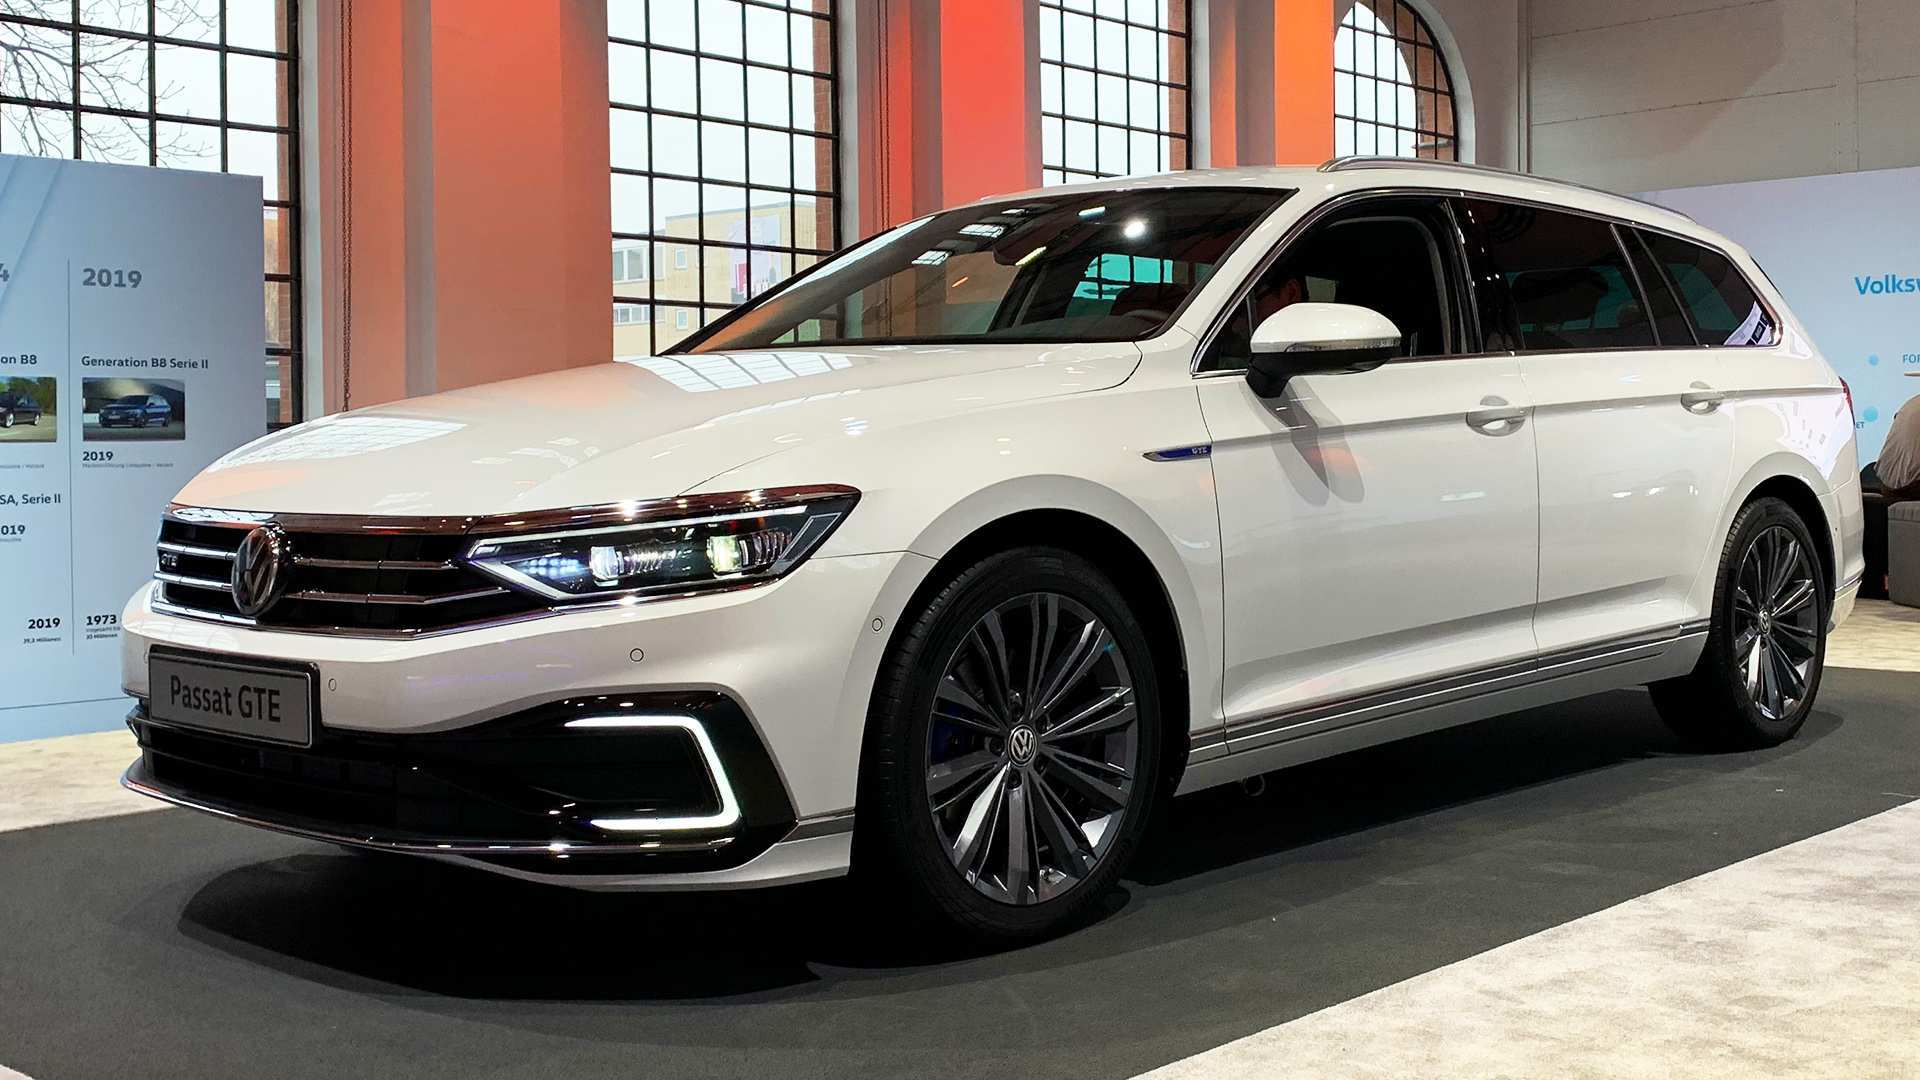 62 The Best 2019 Volkswagen Passat Price And Release Date